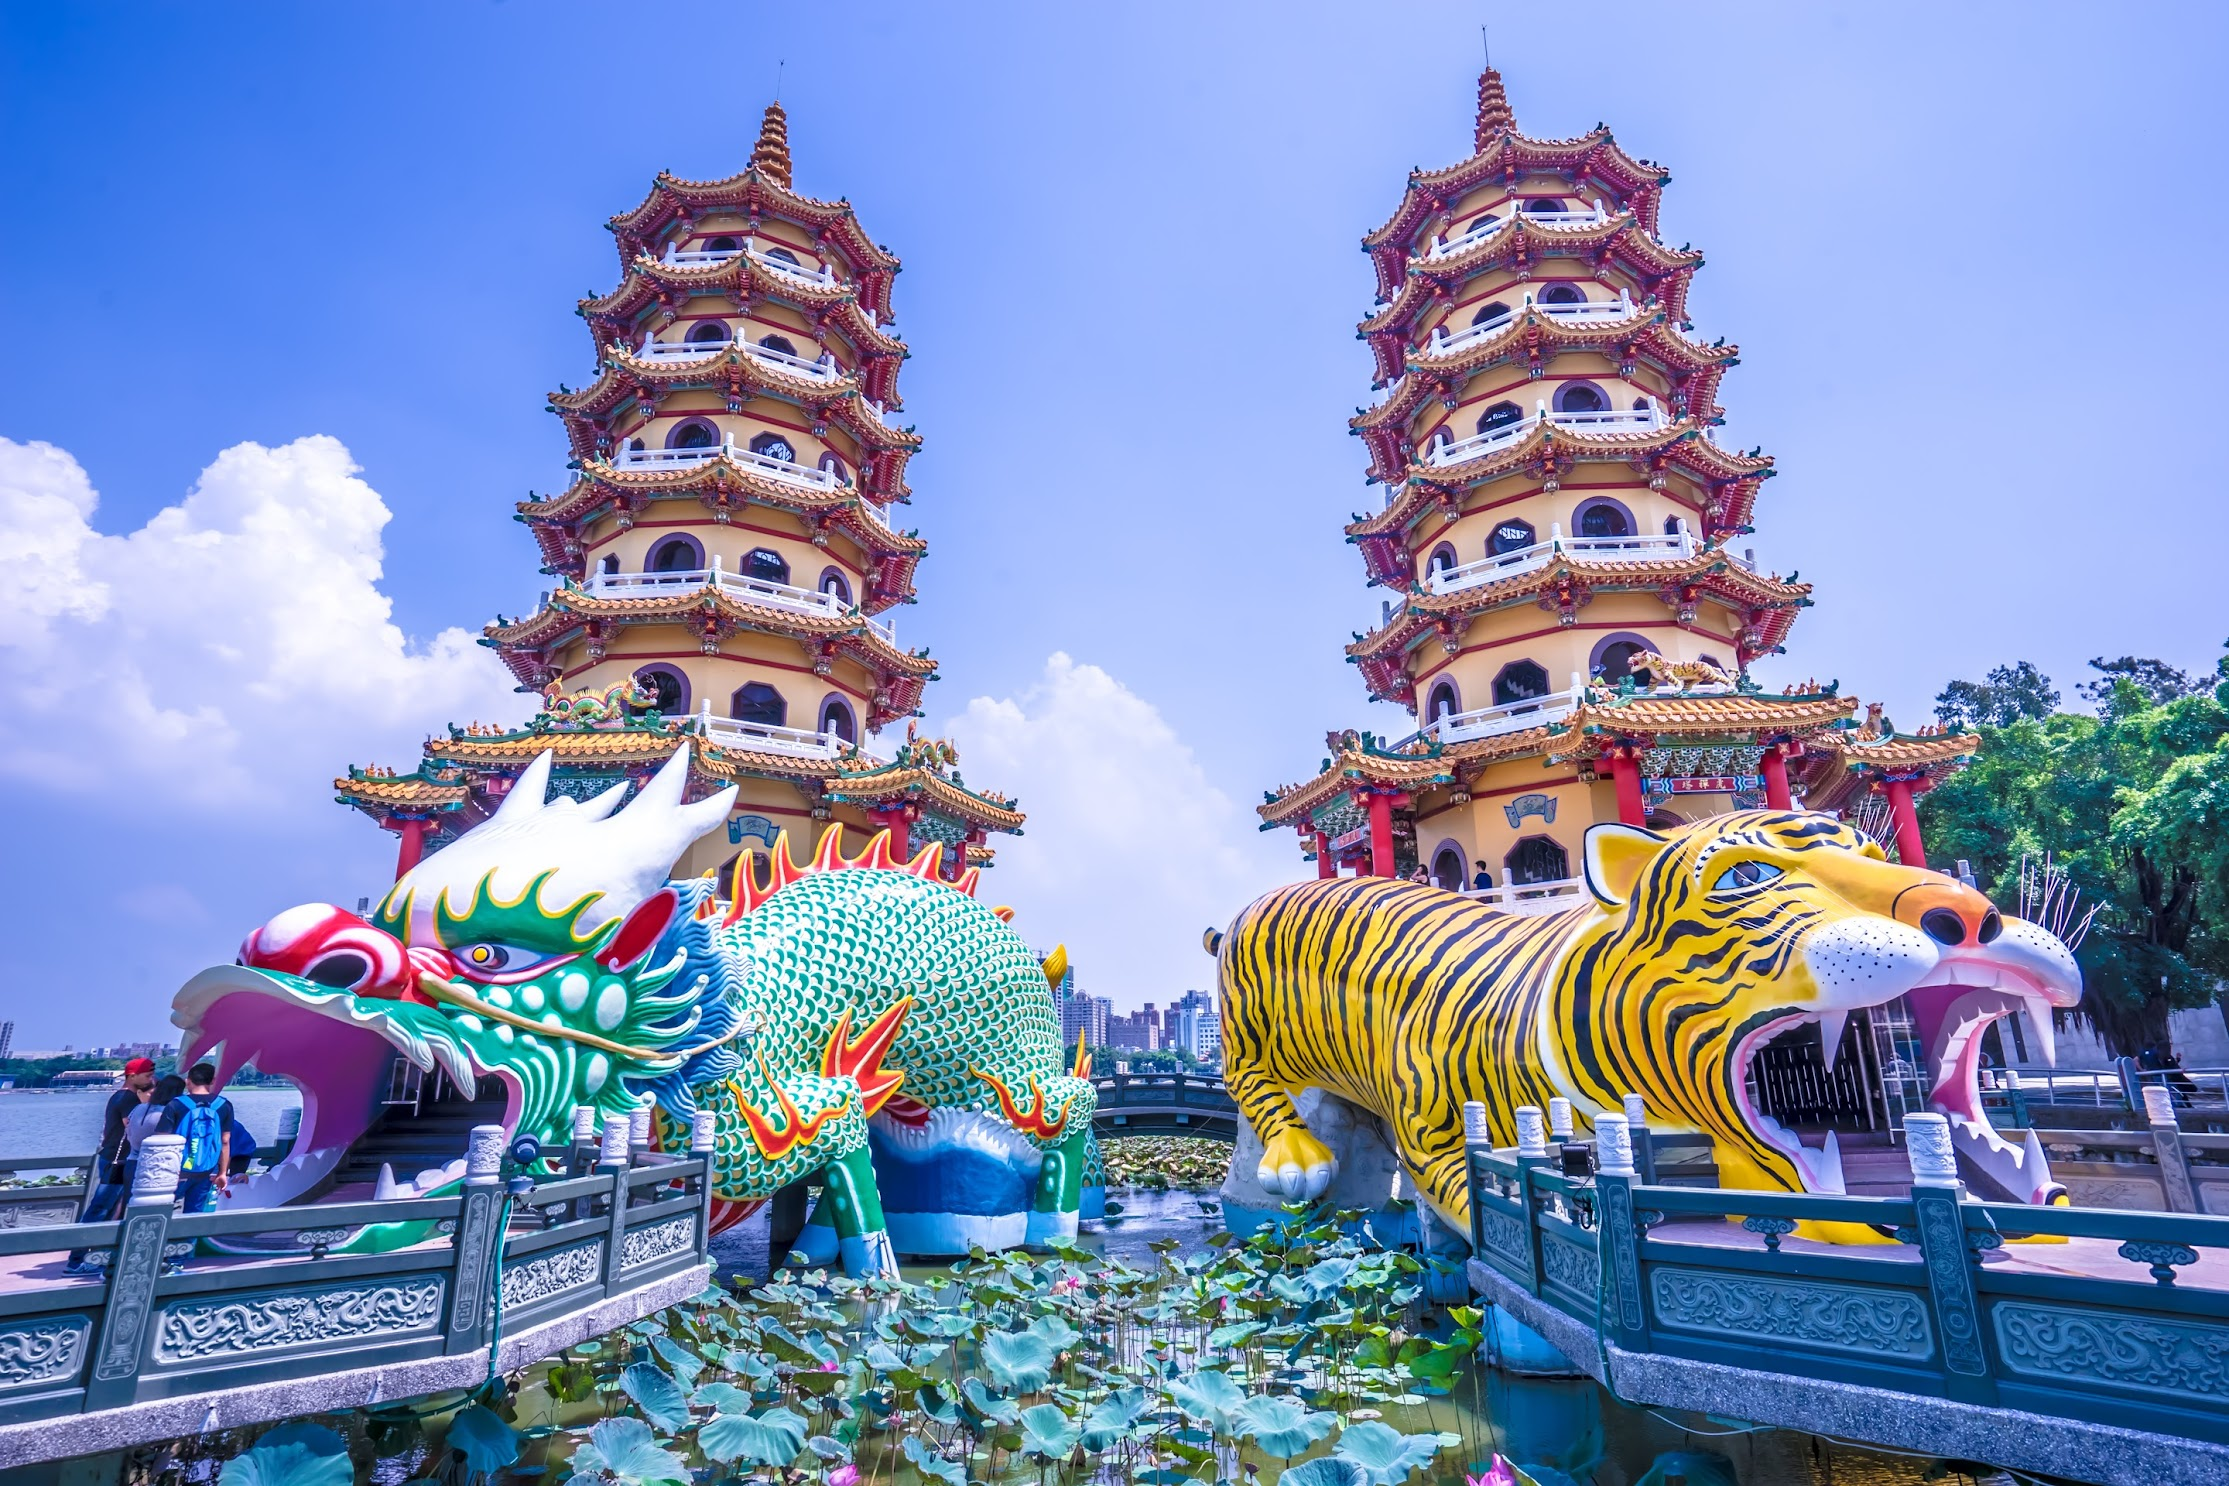 Kaohsiung Lotus Pond Dragon and Tiger Pagodas2